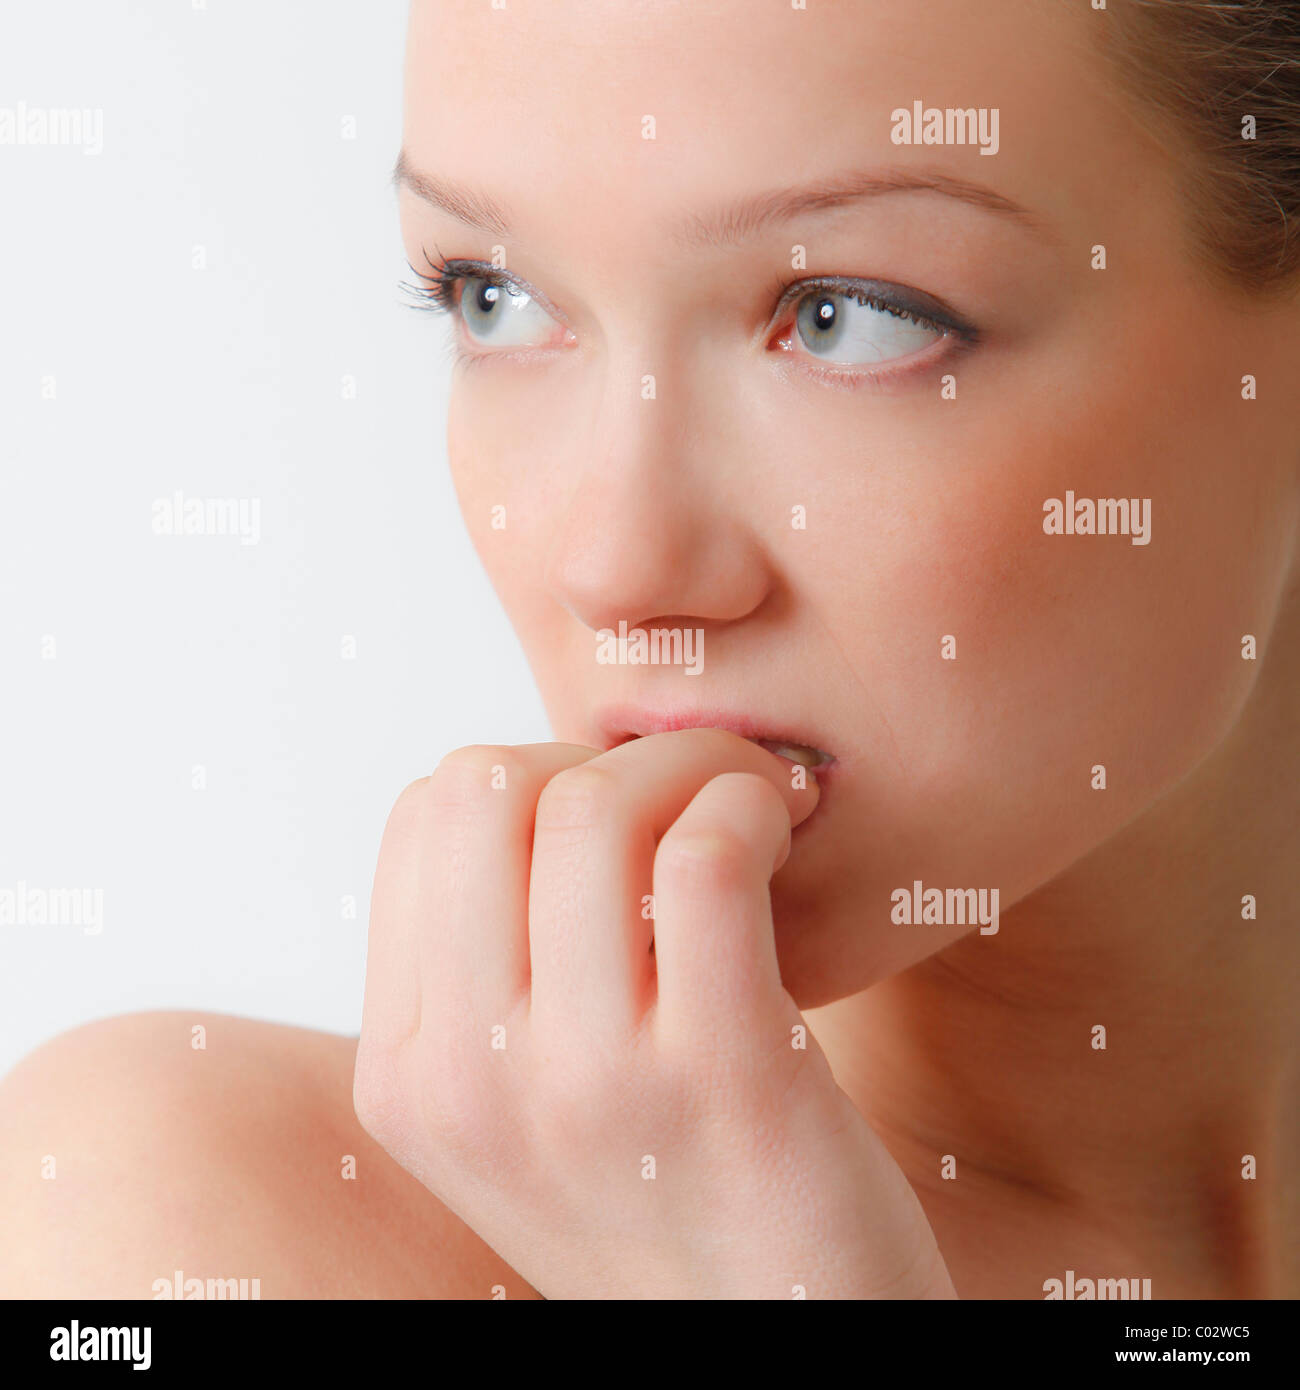 young woman biting one's nails - Stock Image